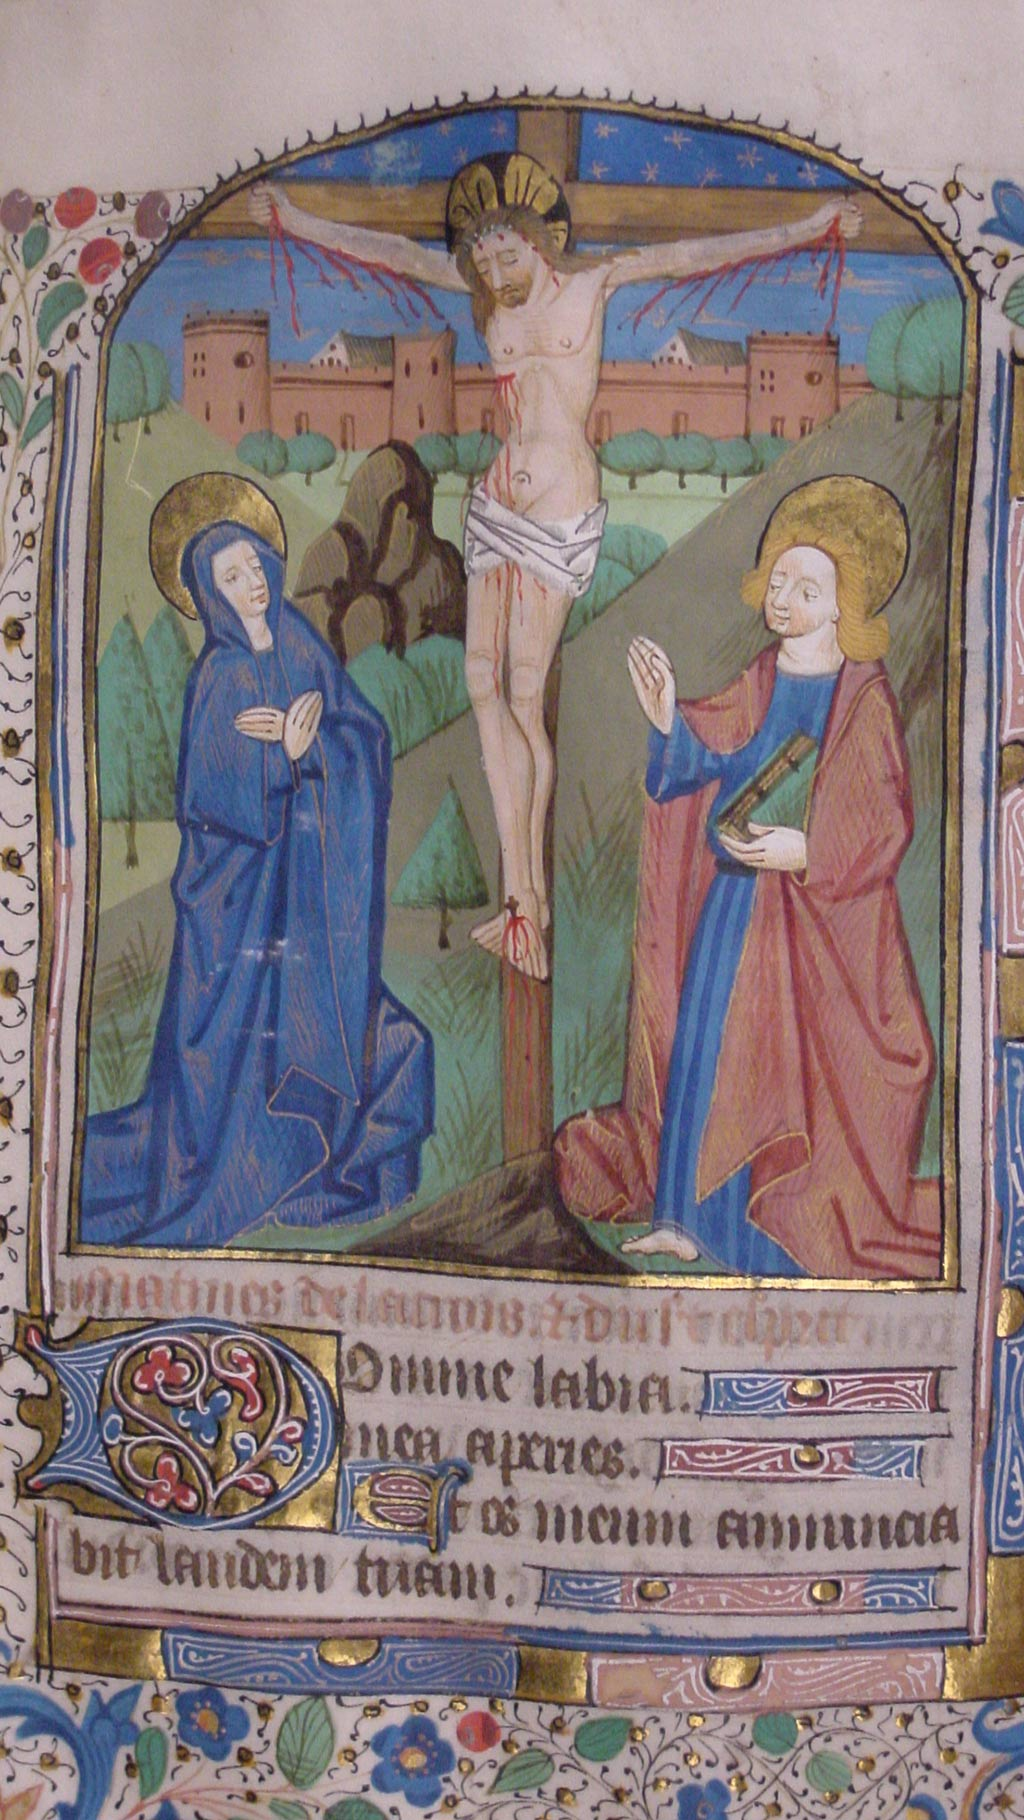 inside page of the manuscript, Jesus on the cross, Virgin Mary and a man holding book in red cloak